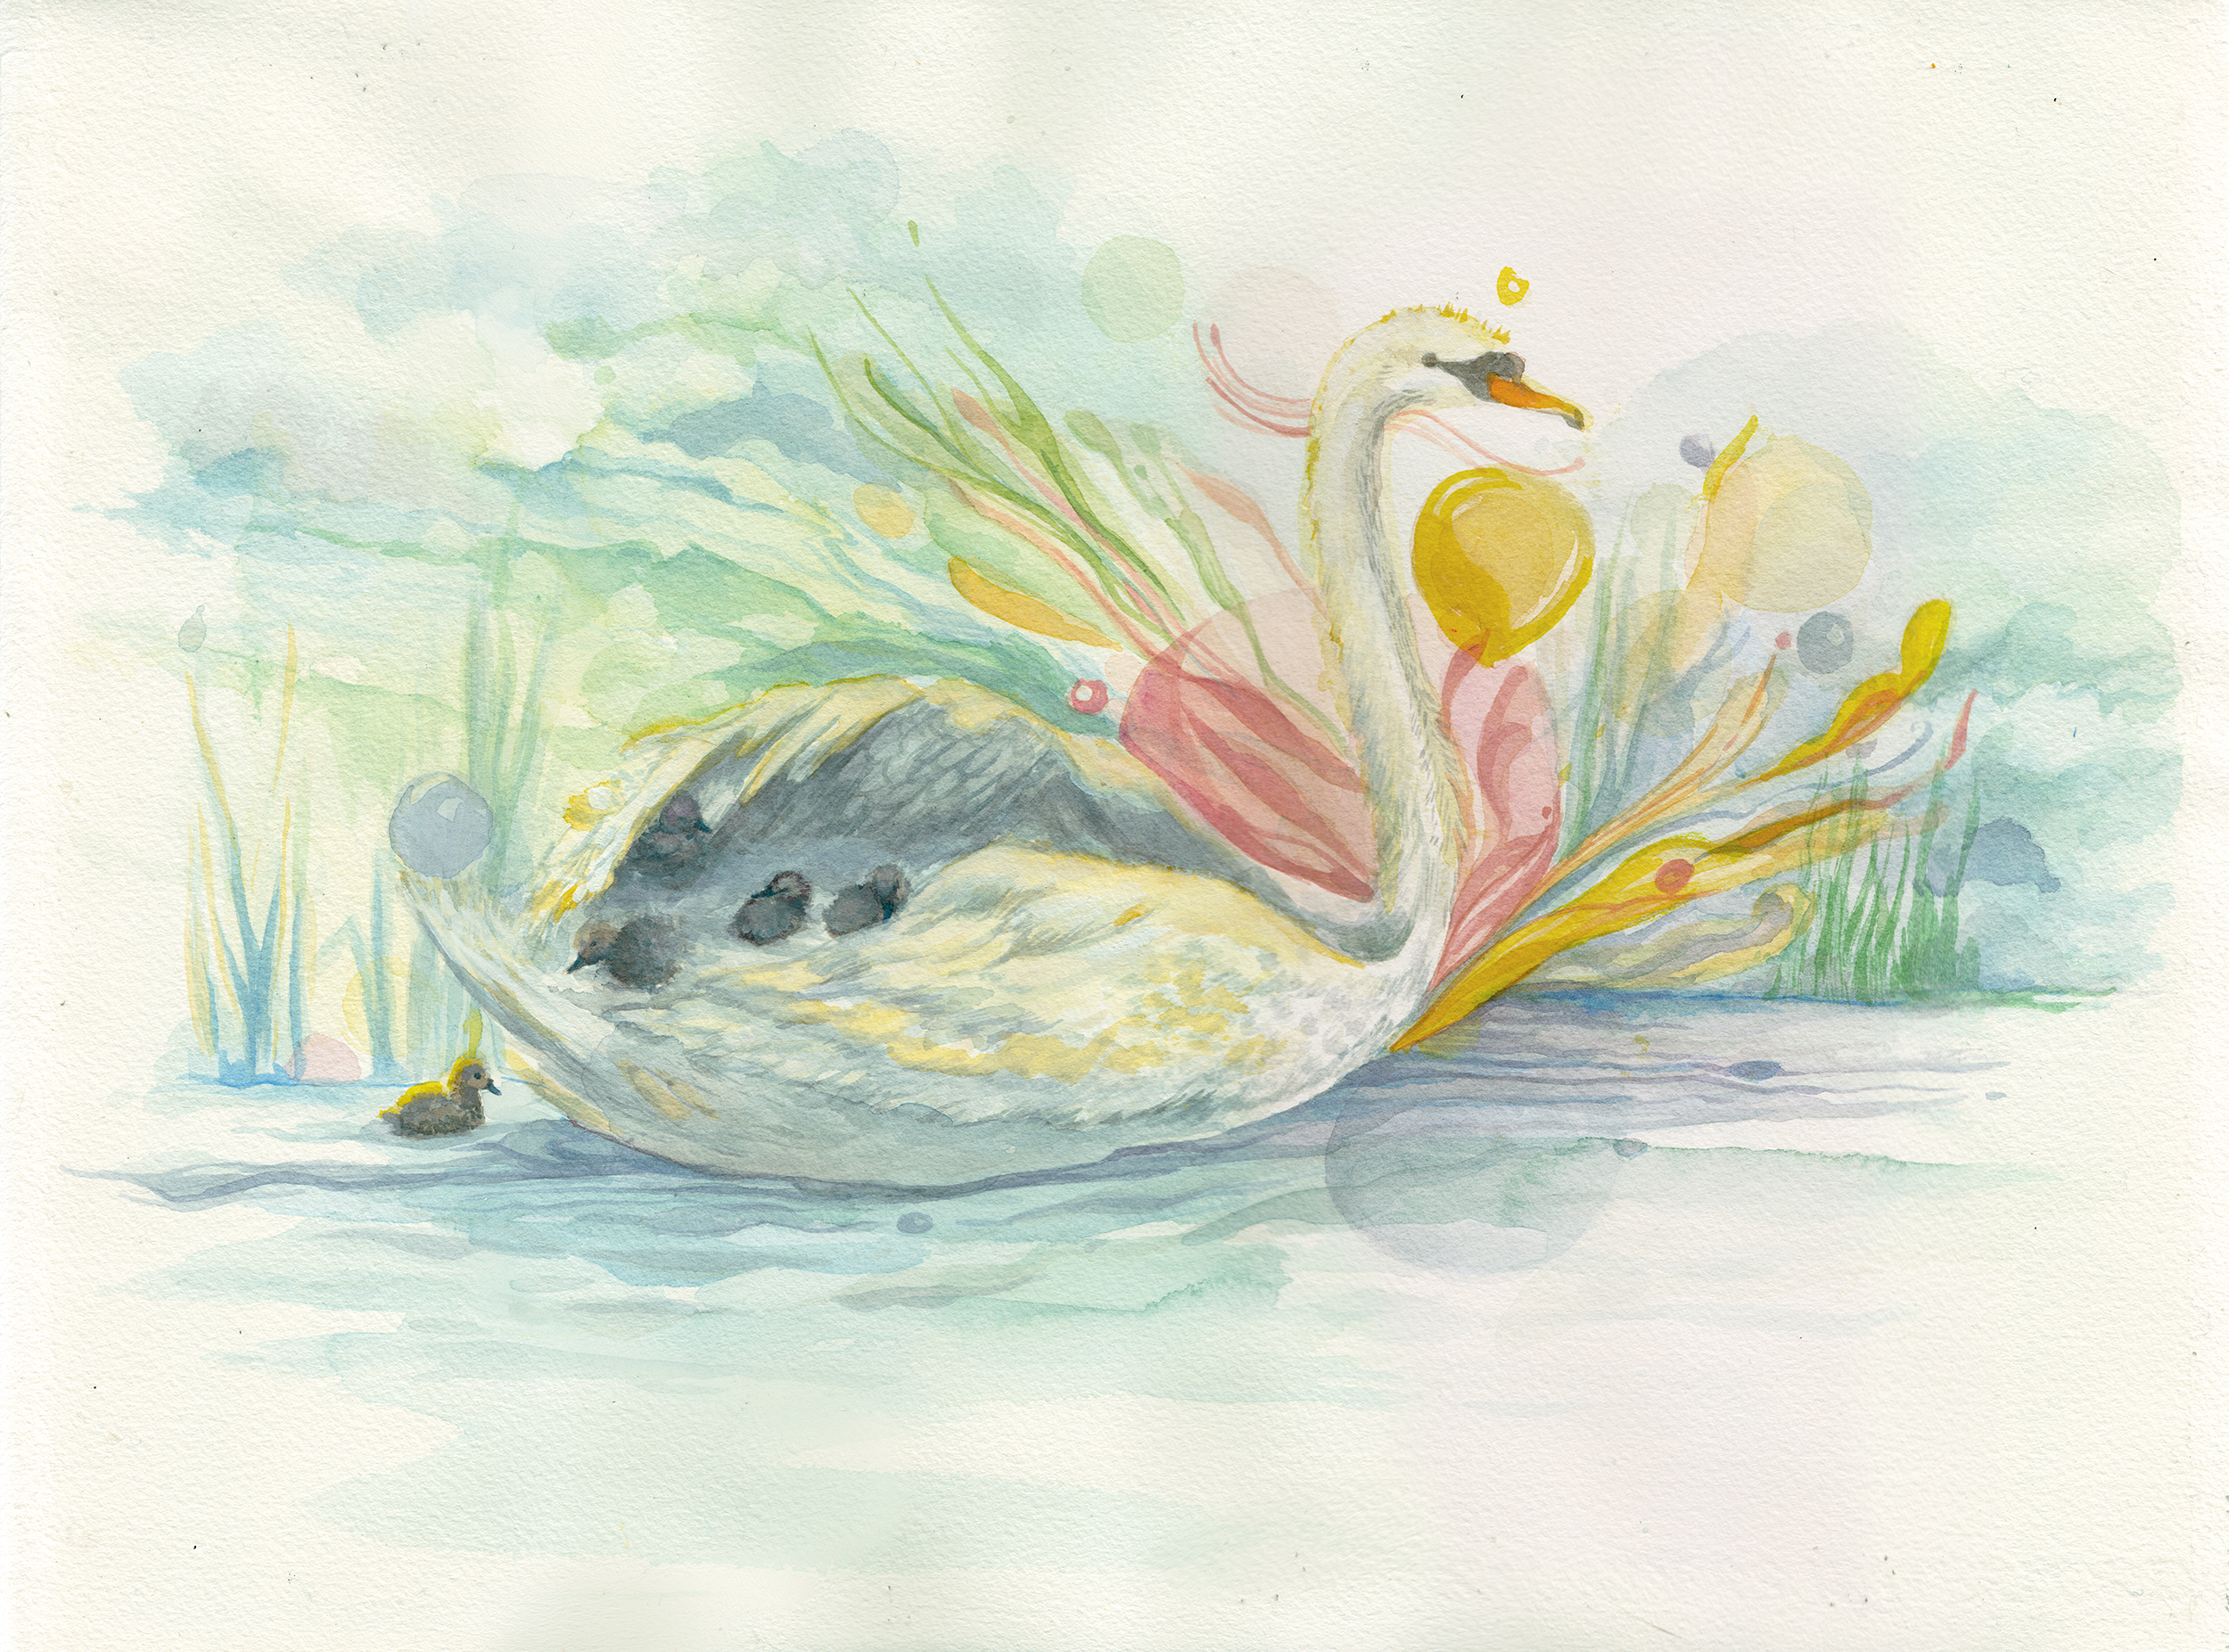 Swan and Cygnets, 2013